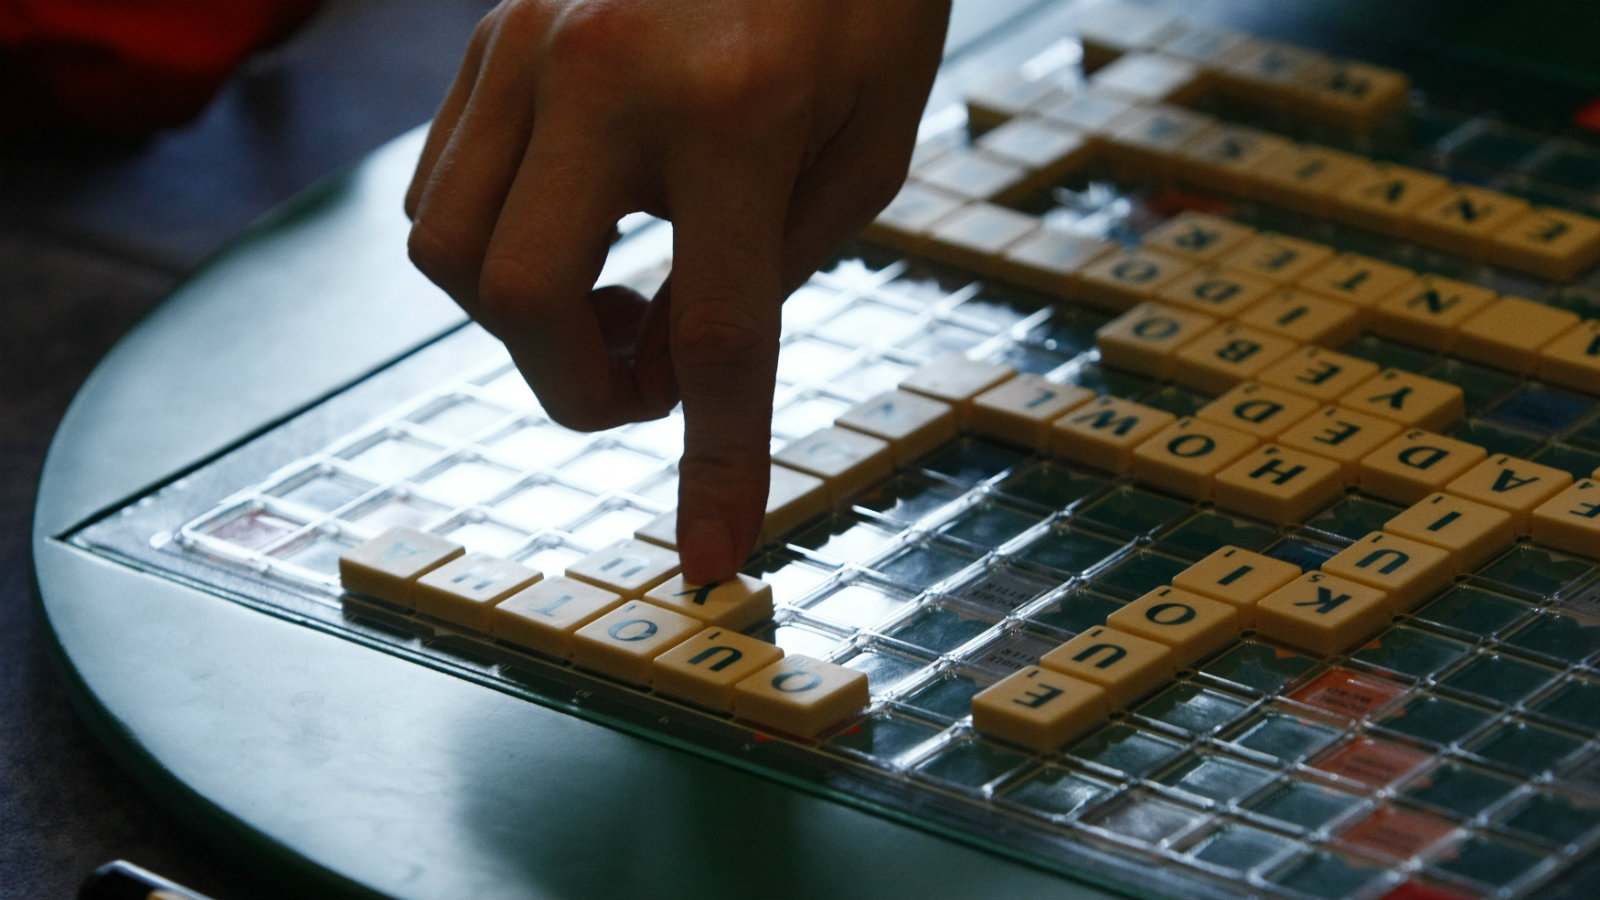 Players play scrabble at 2011 World Scrabble Championship in Warsaw October 15, 2011. (POLAND - Tags: SOCIETY)